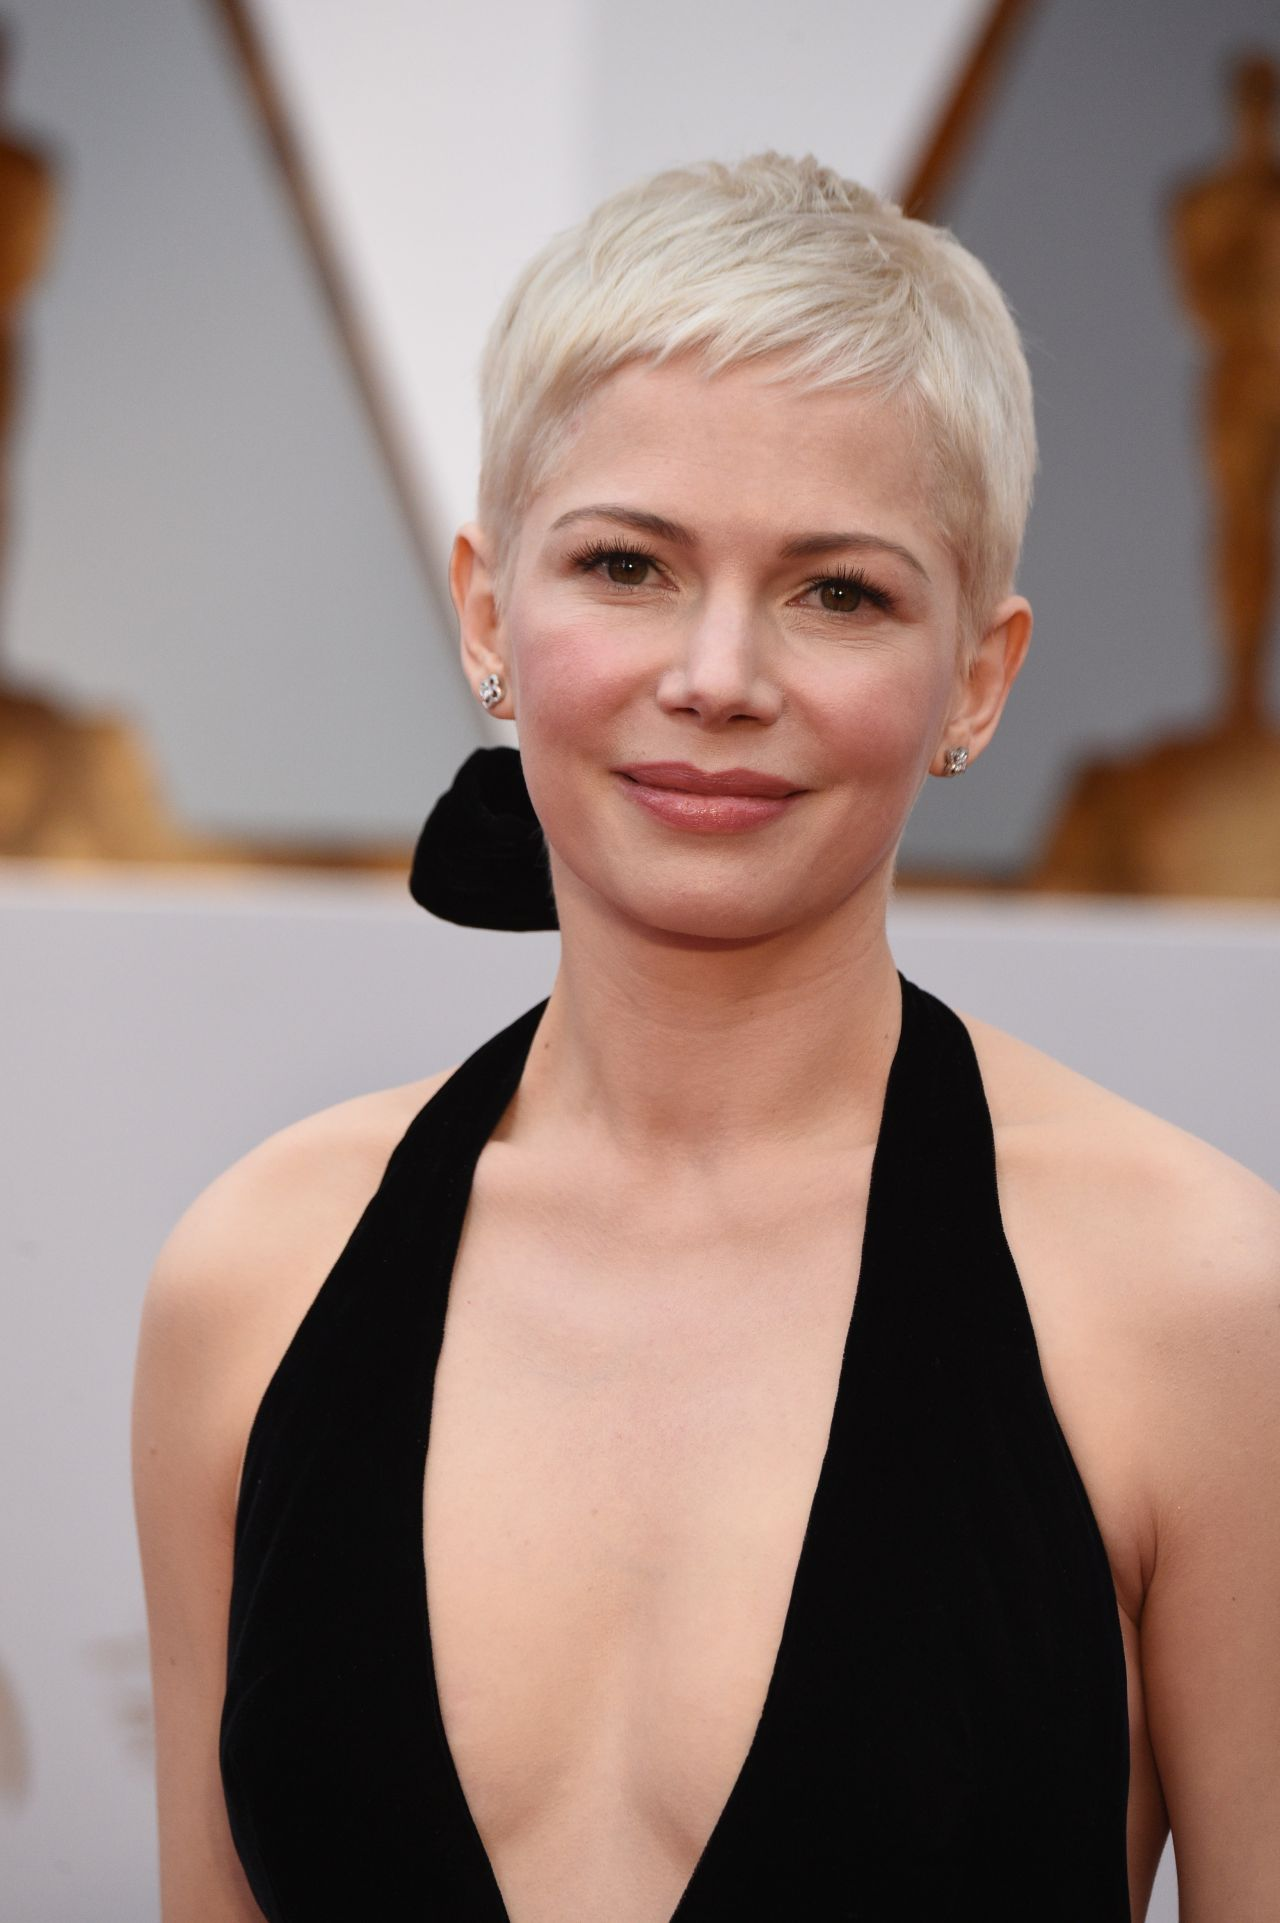 michelle williams - photo #8